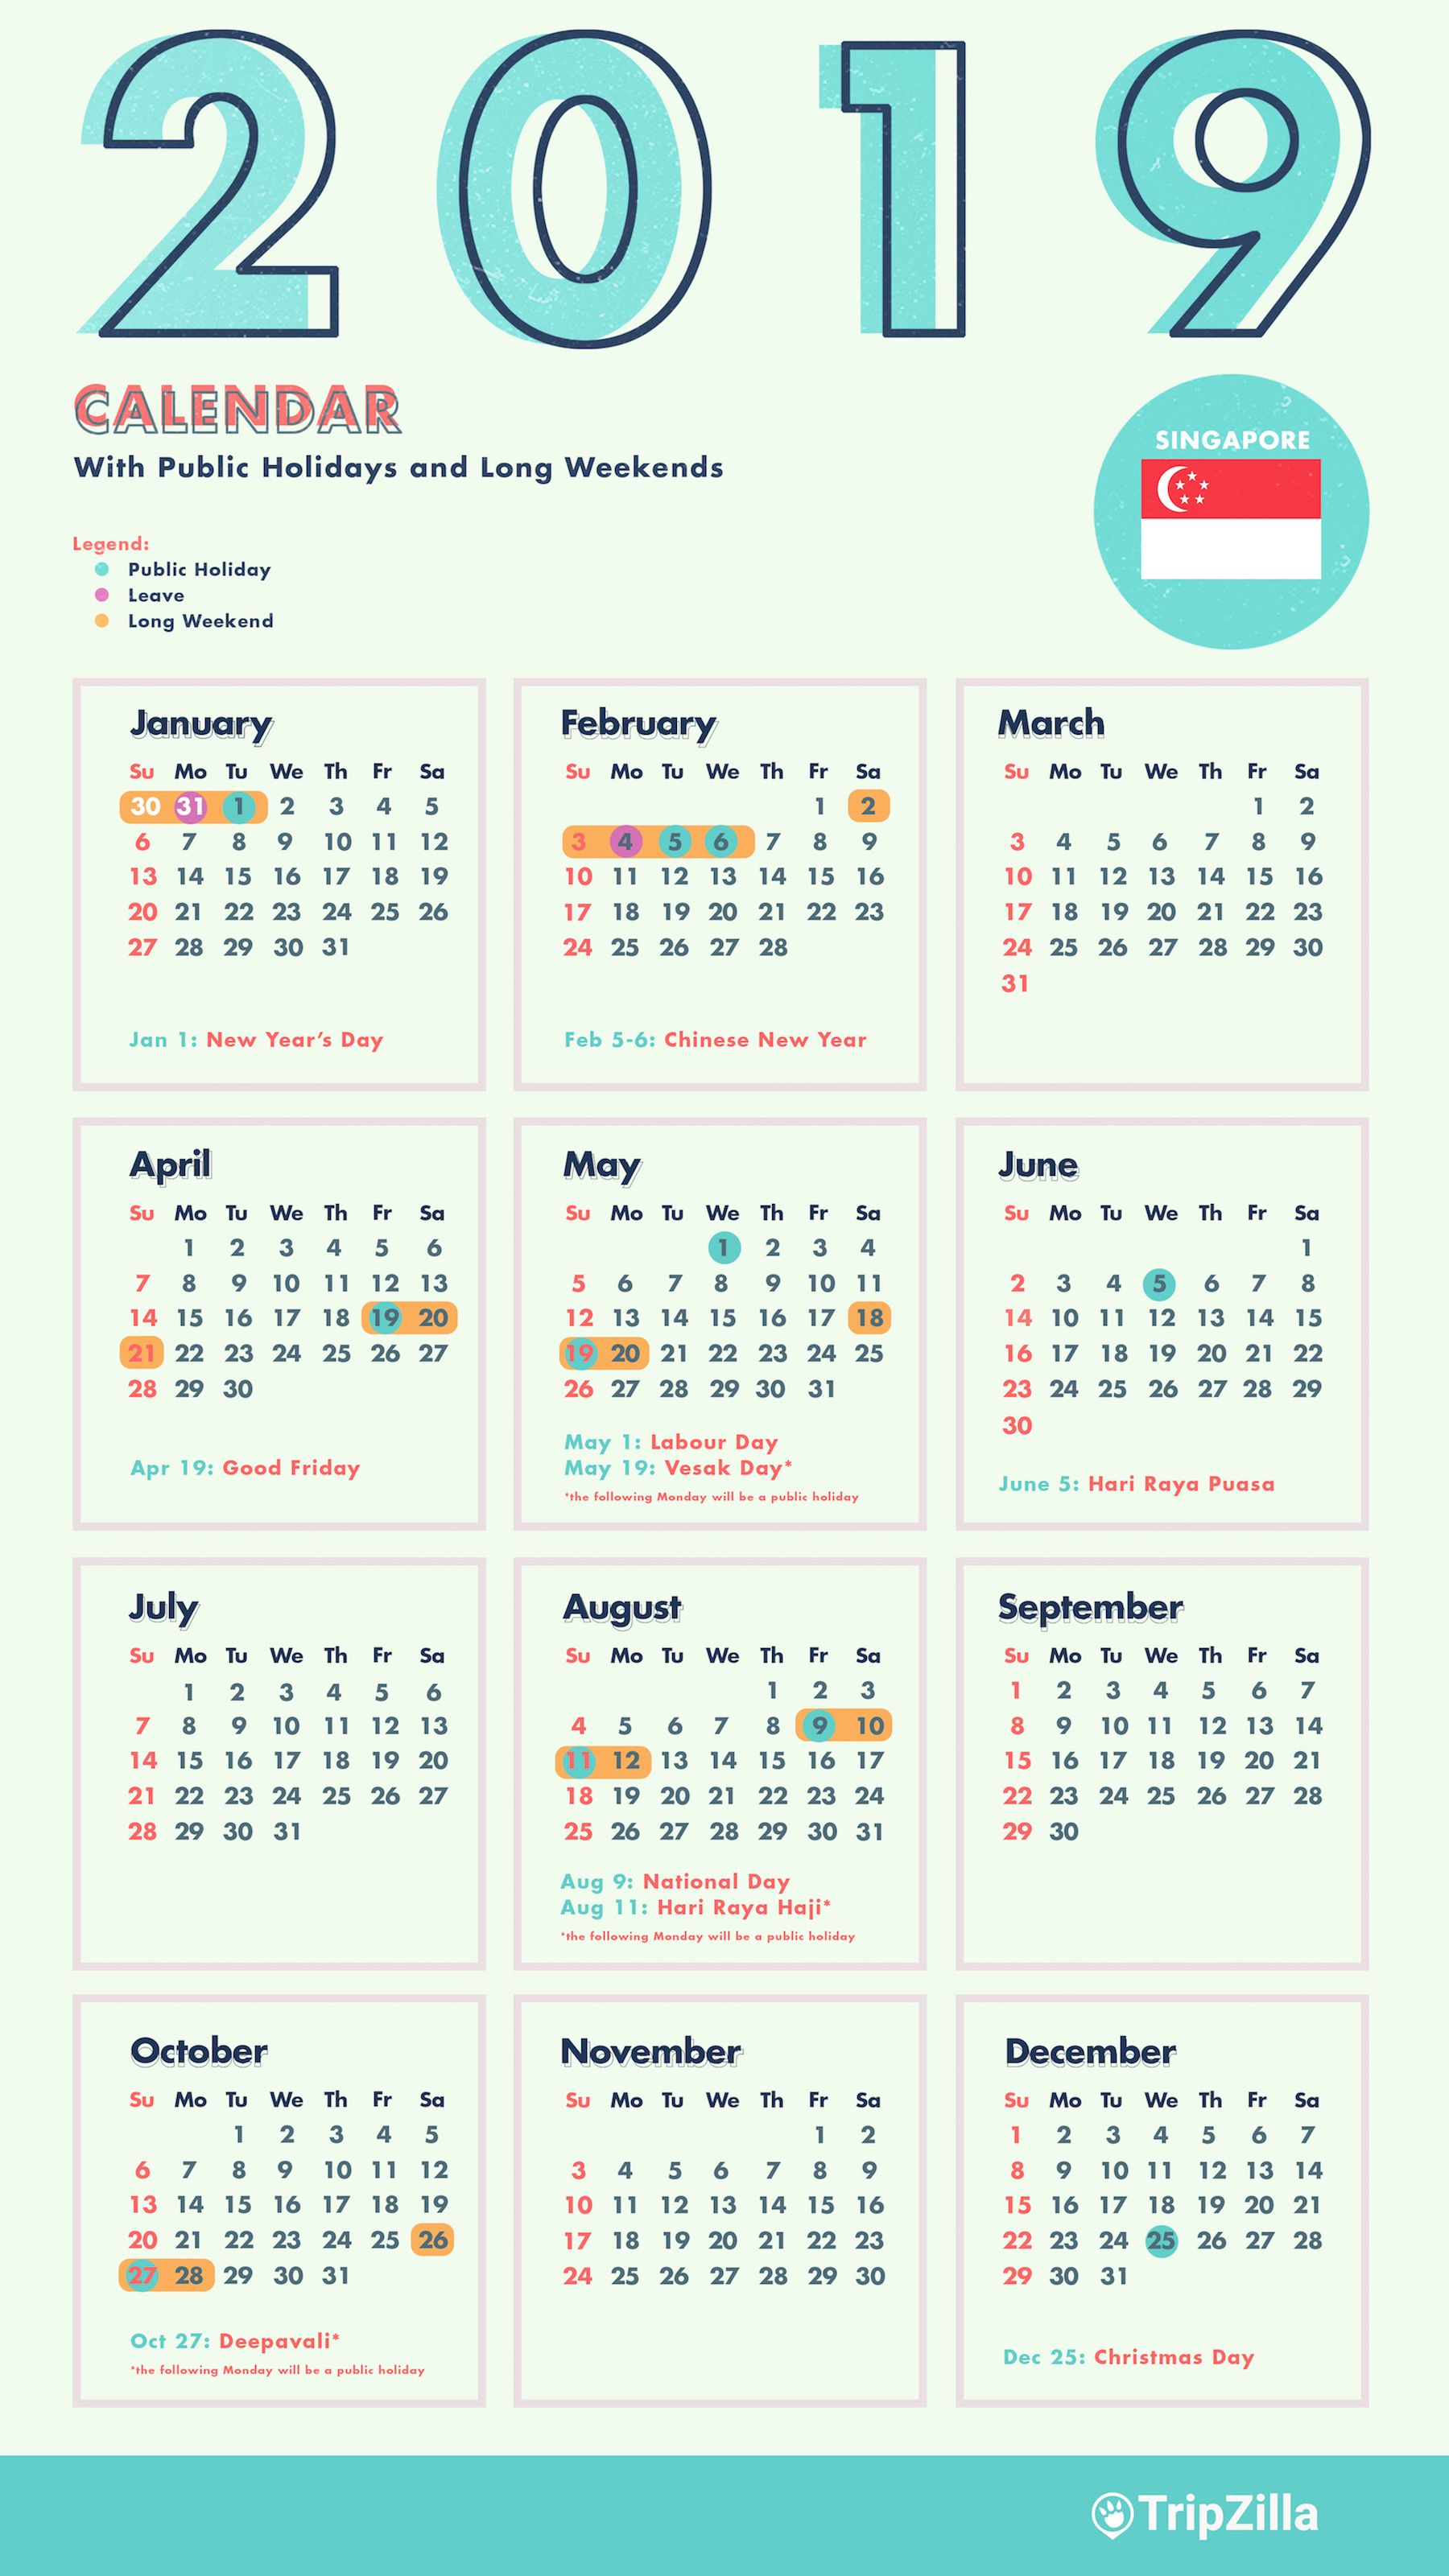 2019 Chinese New Year Calendar Singapore In 2020 National Day Calendar Chinese New Year Calendar New Year Calendar